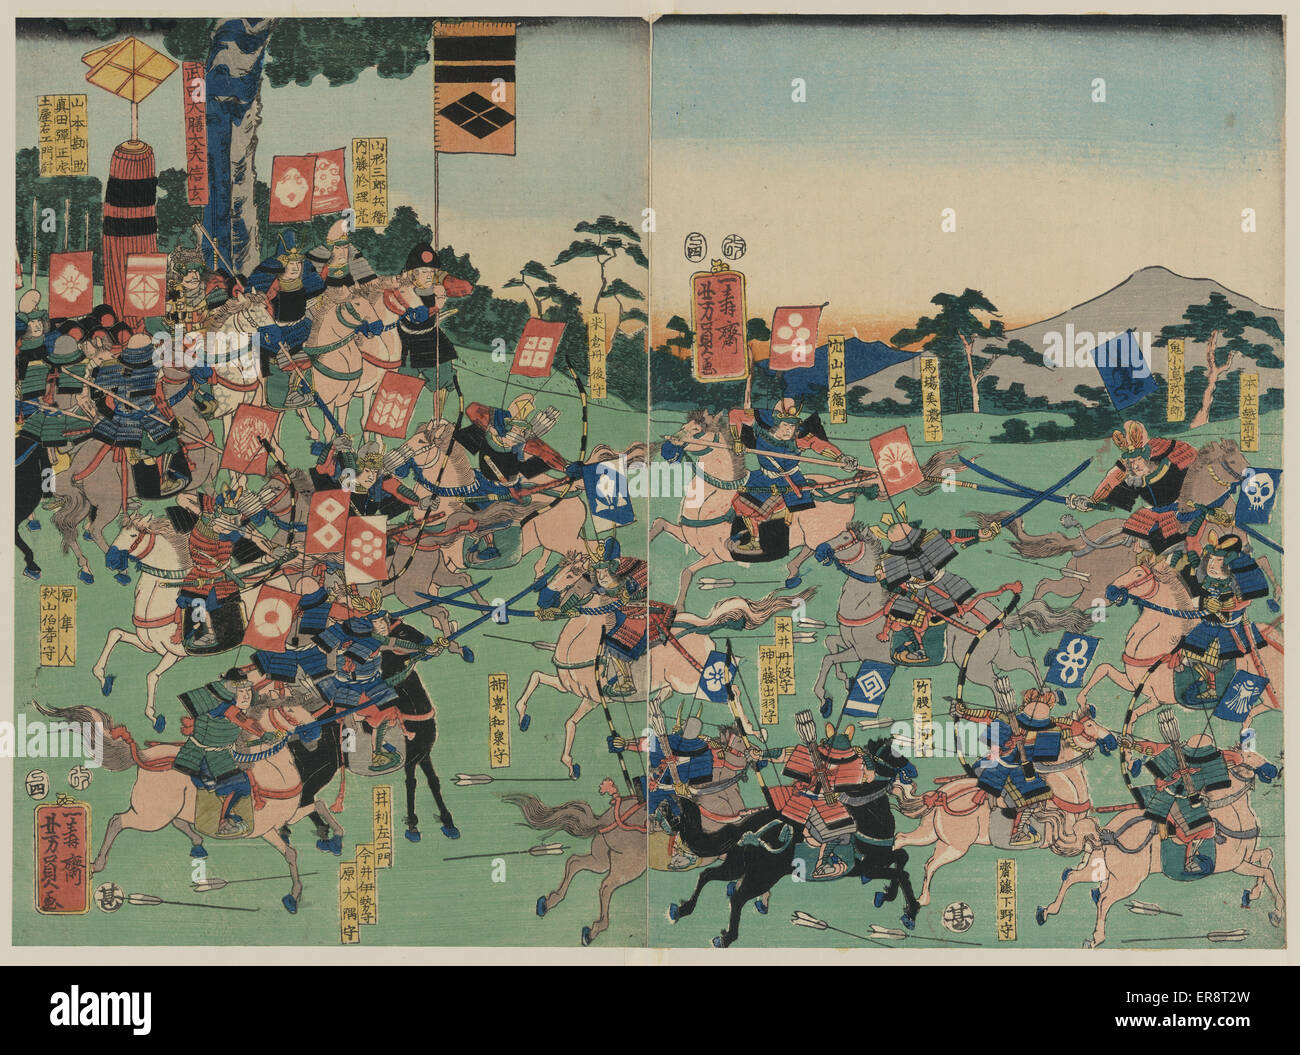 Battle at Kawanakajima. Print shows two armies of cavalry engaged in a battle with swordsmen and archers on horseback. - Stock Image